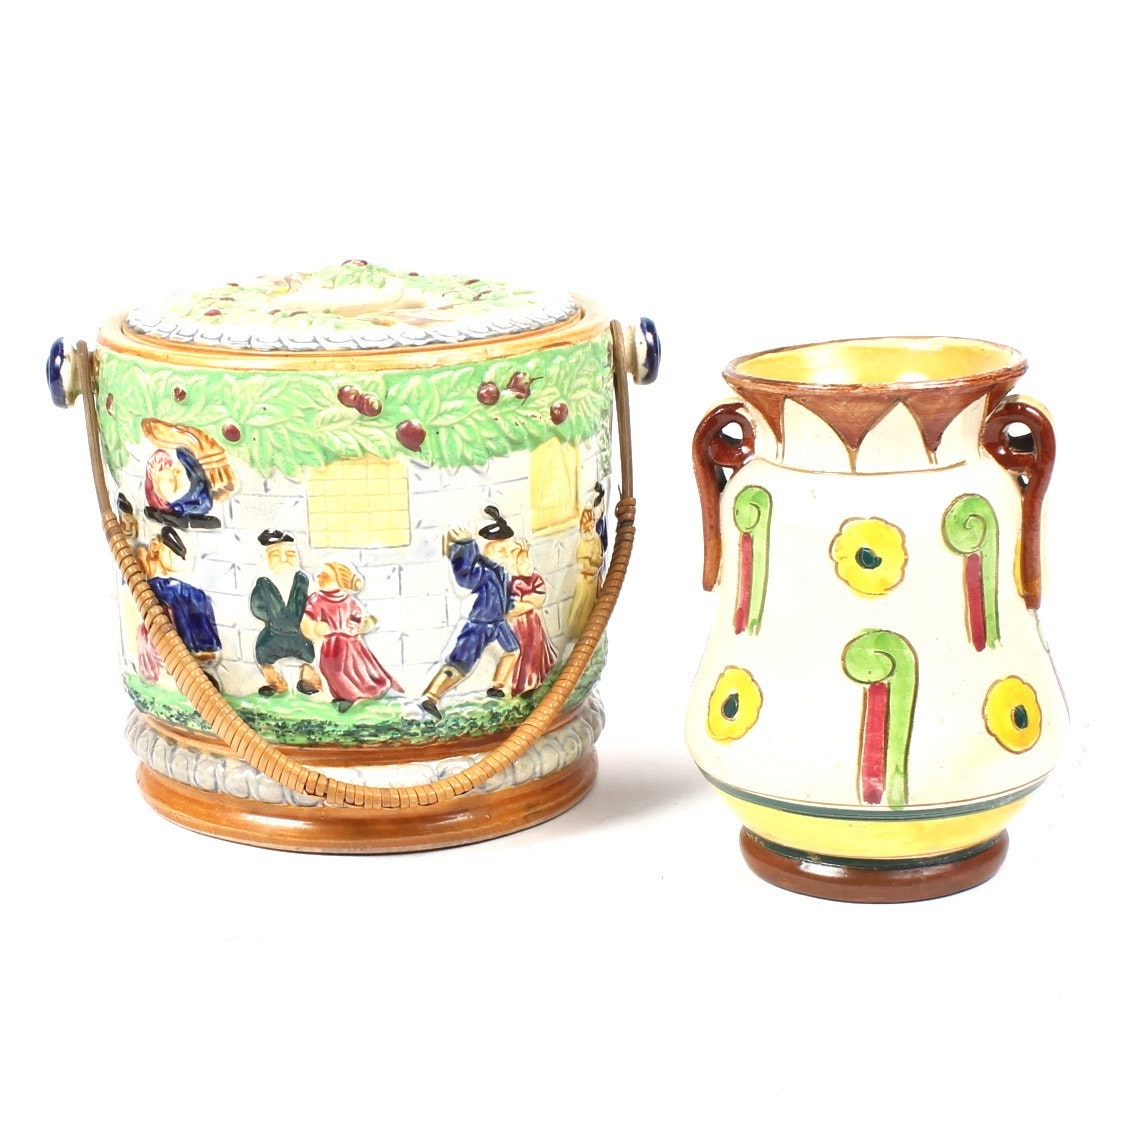 Ceramic Jars from Italy and Japan